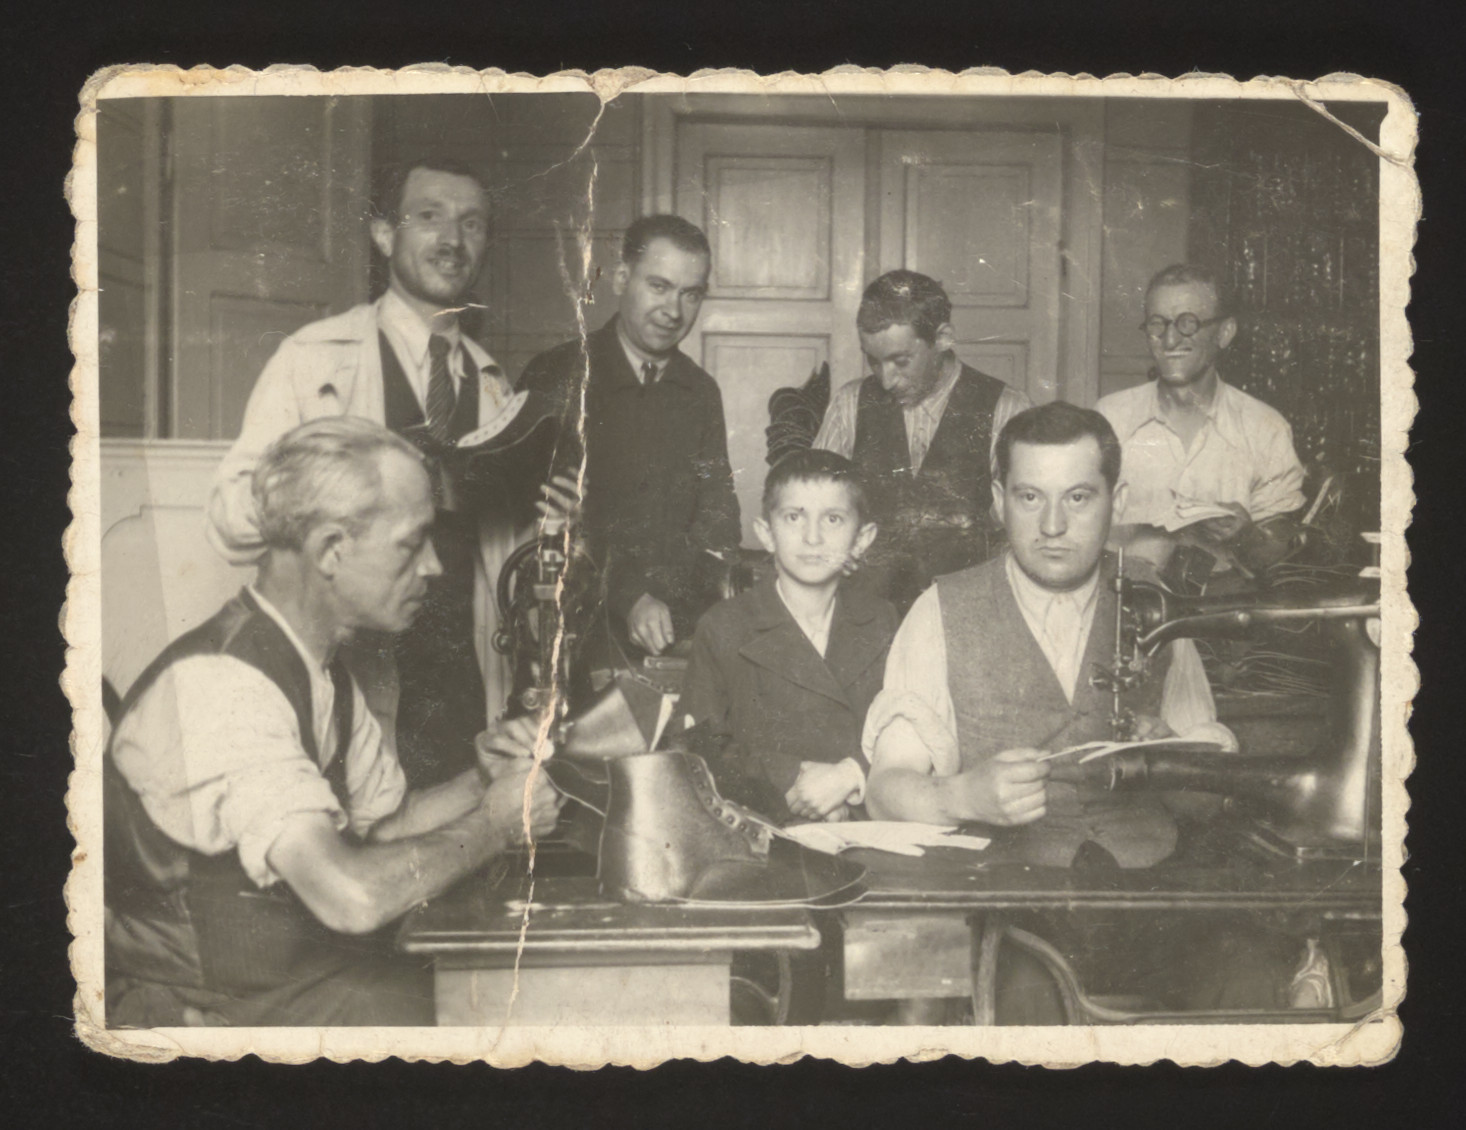 Jewish artisans work in a small shoemaking workshop in Krakow shortly before entering the ghetto.  Pictured standing on the left is Simon Spielman.  His son, Arthur, is in the middle.